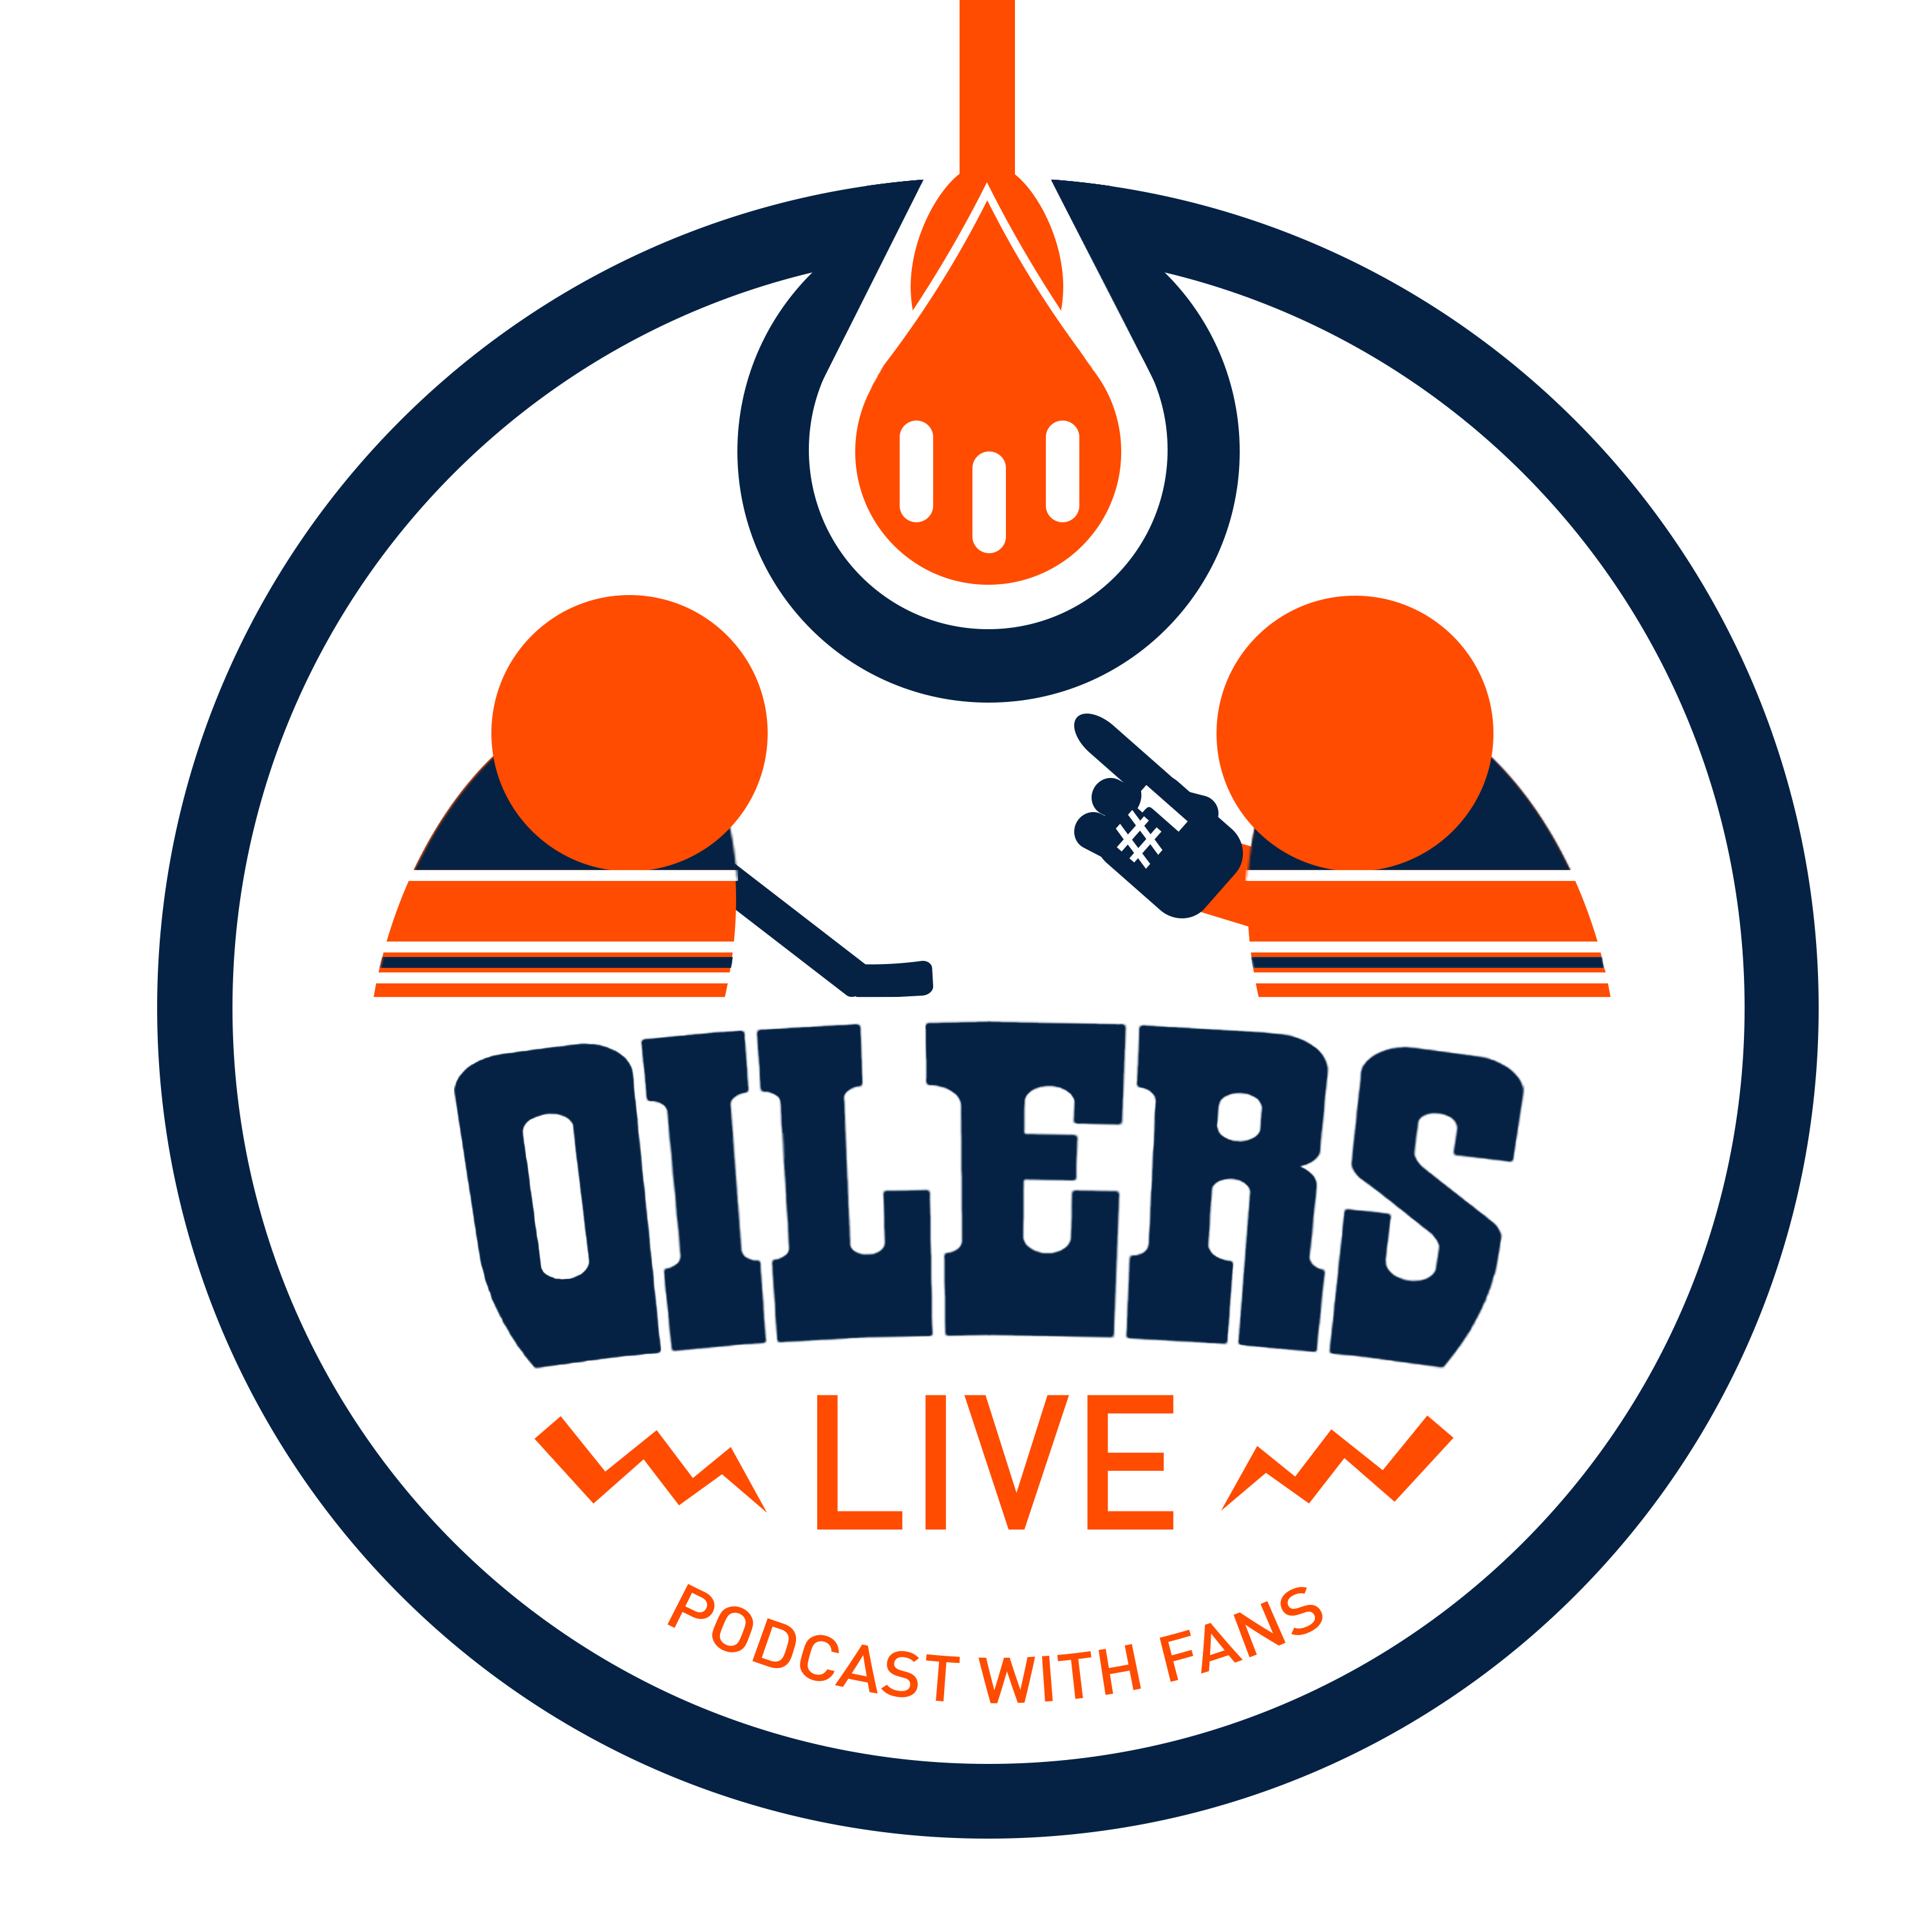 Artwork for Oilers Live Podcast welcomes AJ Haefele from BSN Denver to talk Avs before the game